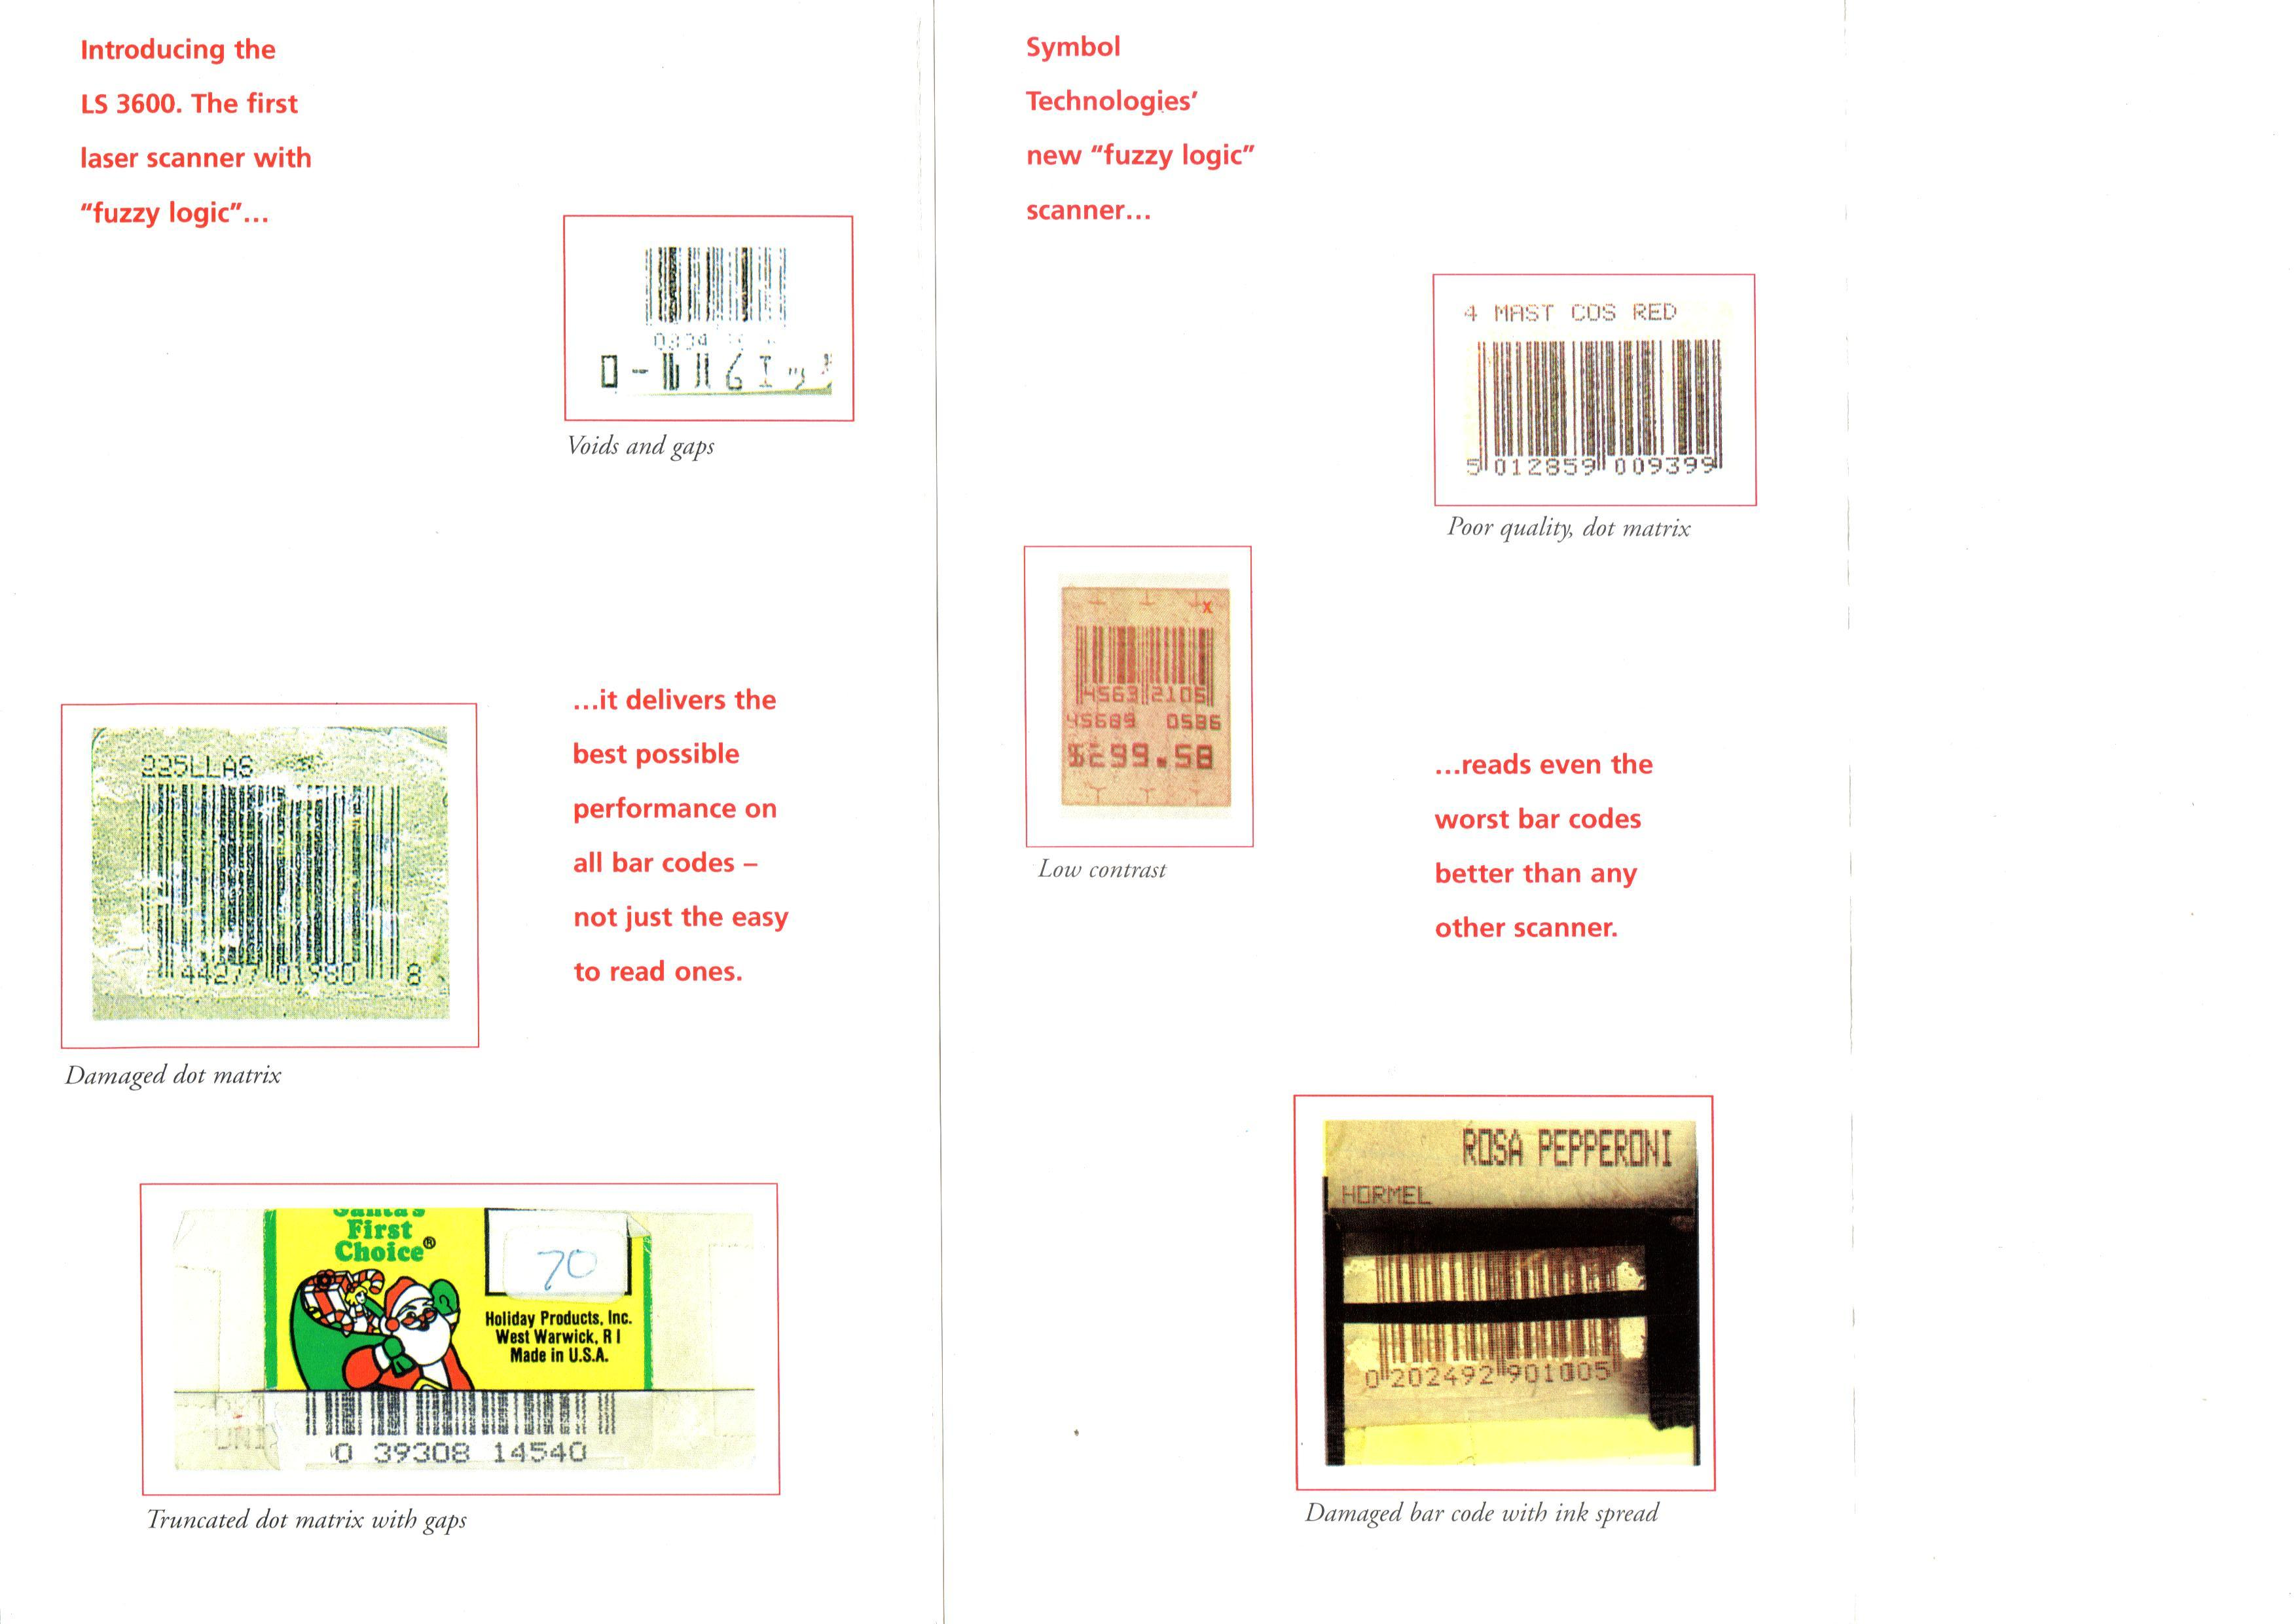 Damaged, poorly printed and difficult to read barcodes that Motorola scanners find easy to read